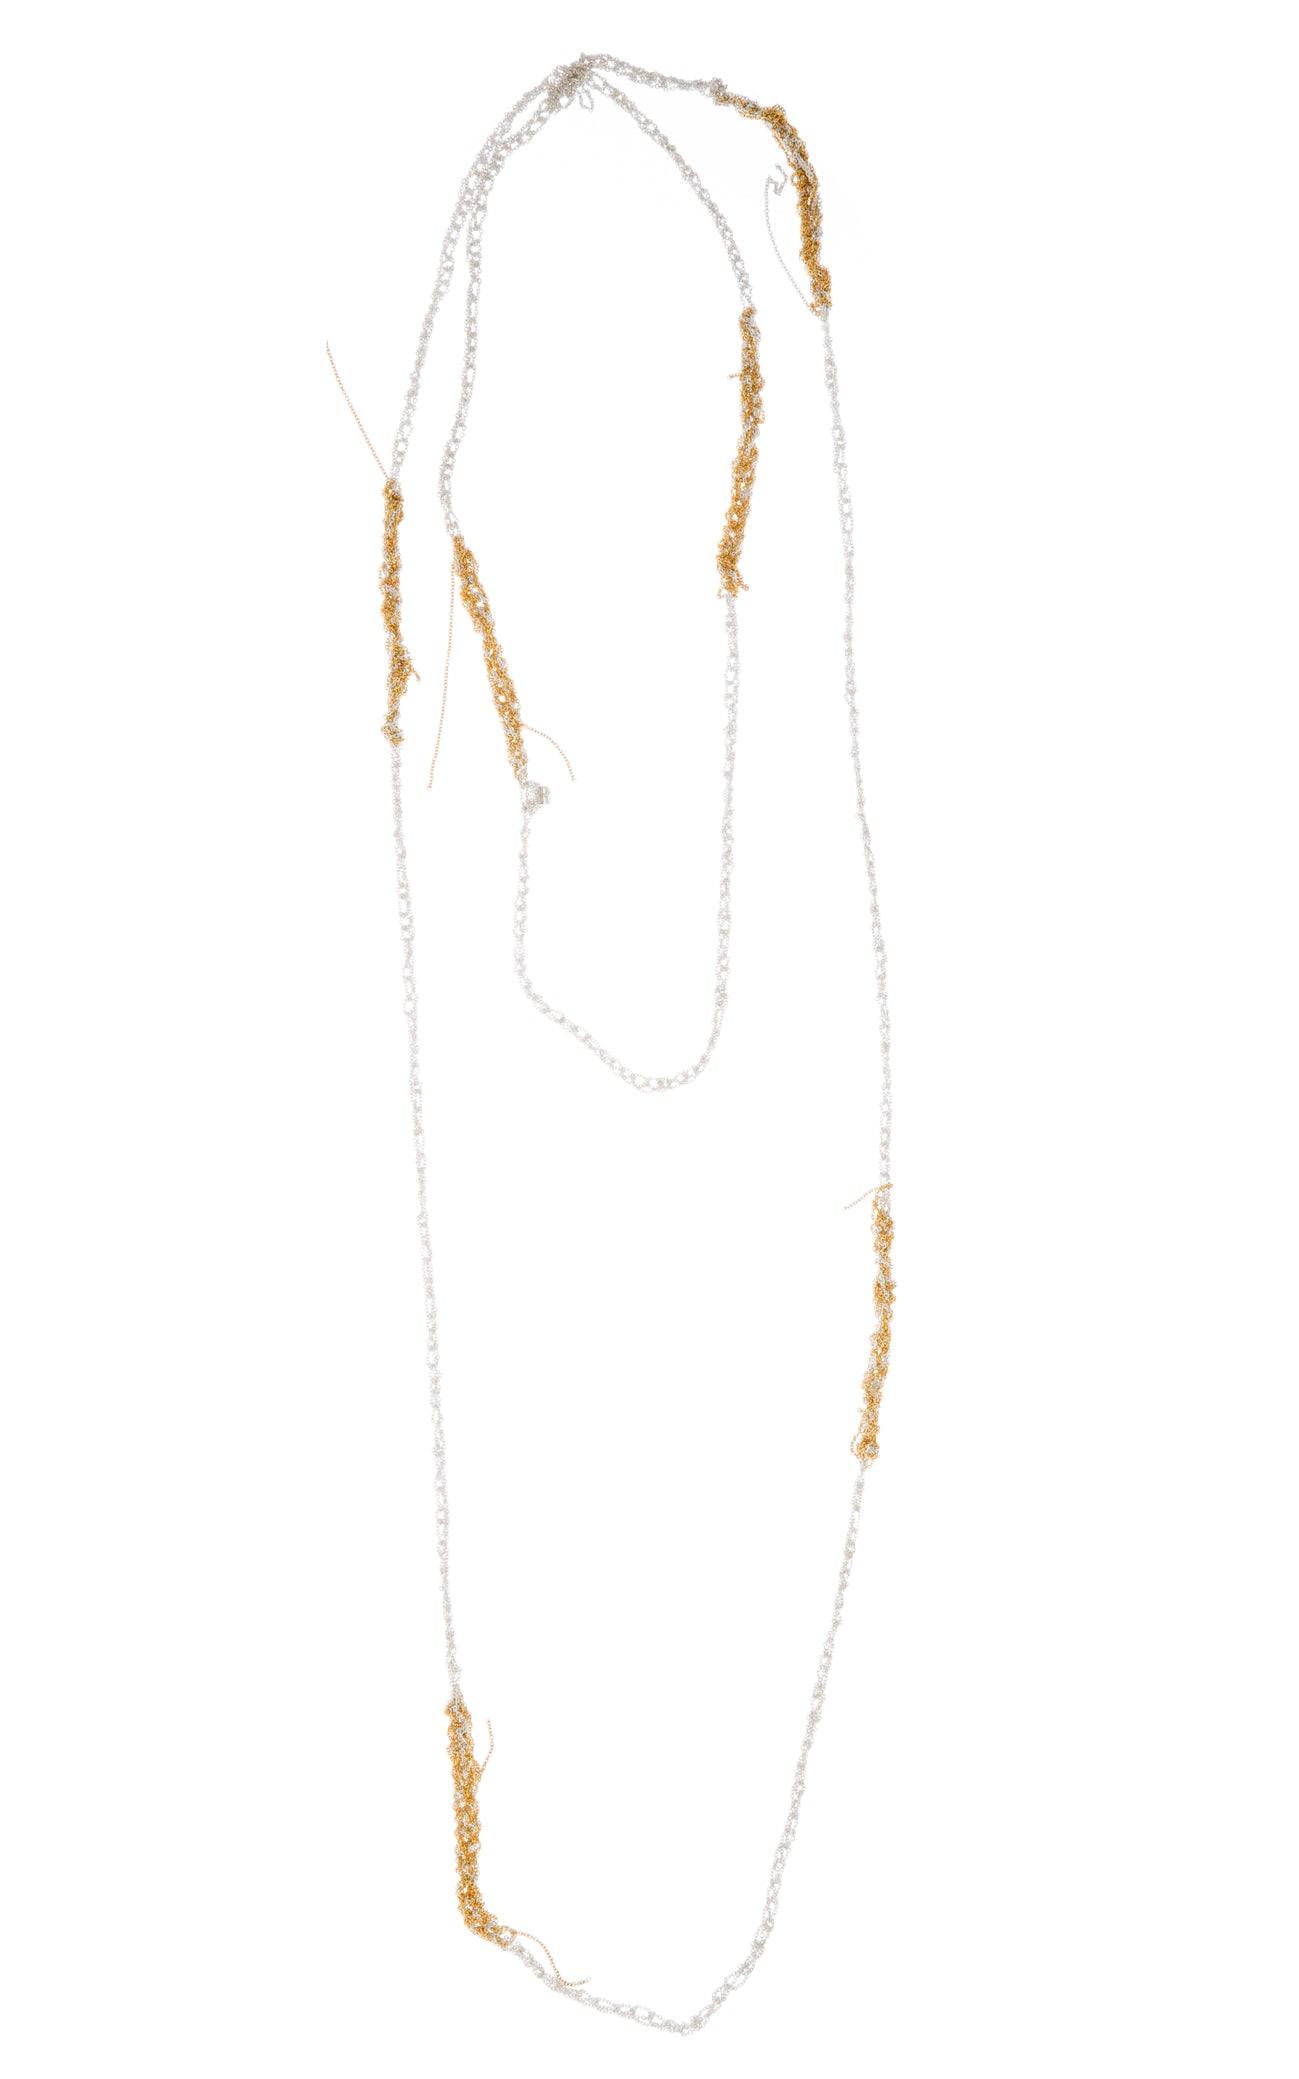 Melded Simple Necklace in Silver + Gold